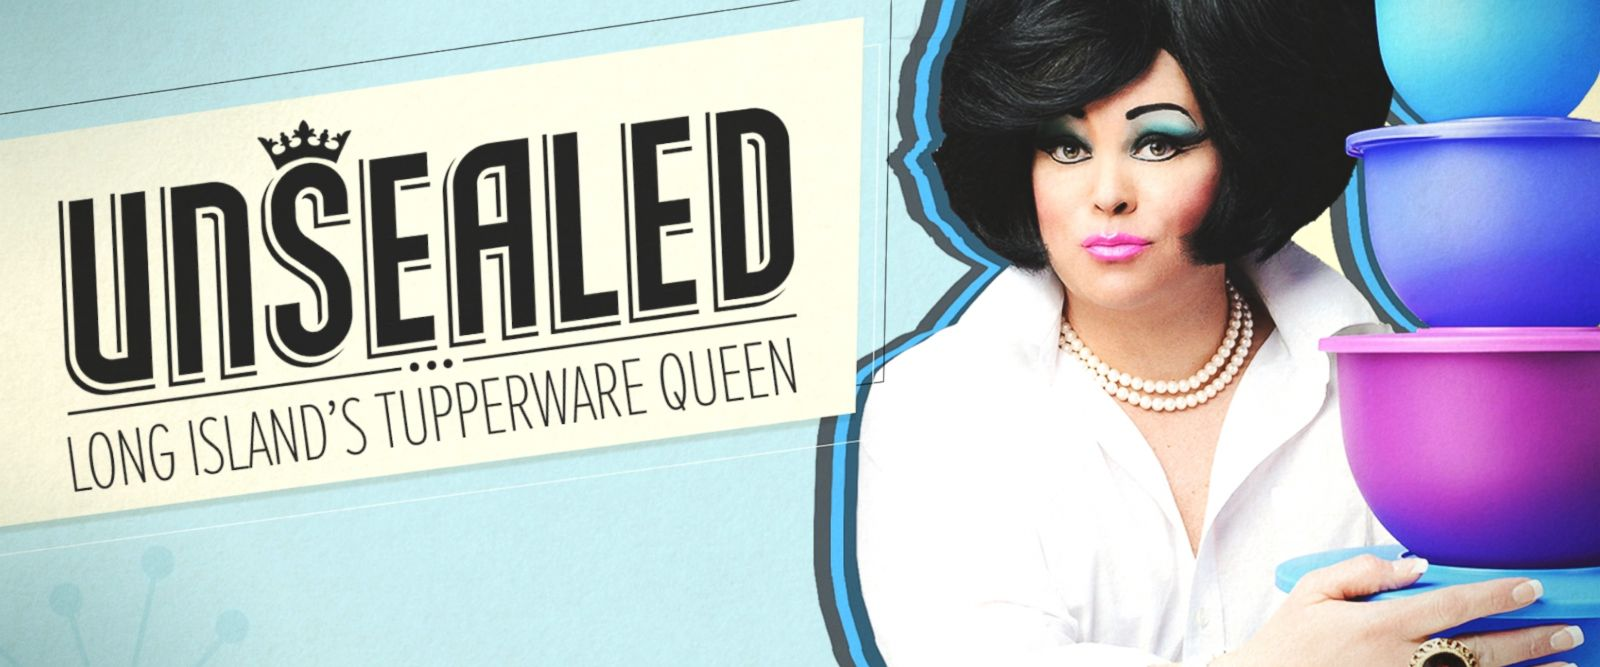 VIDEO: How Long Island's former 'Tupperware queen' came out as her true self